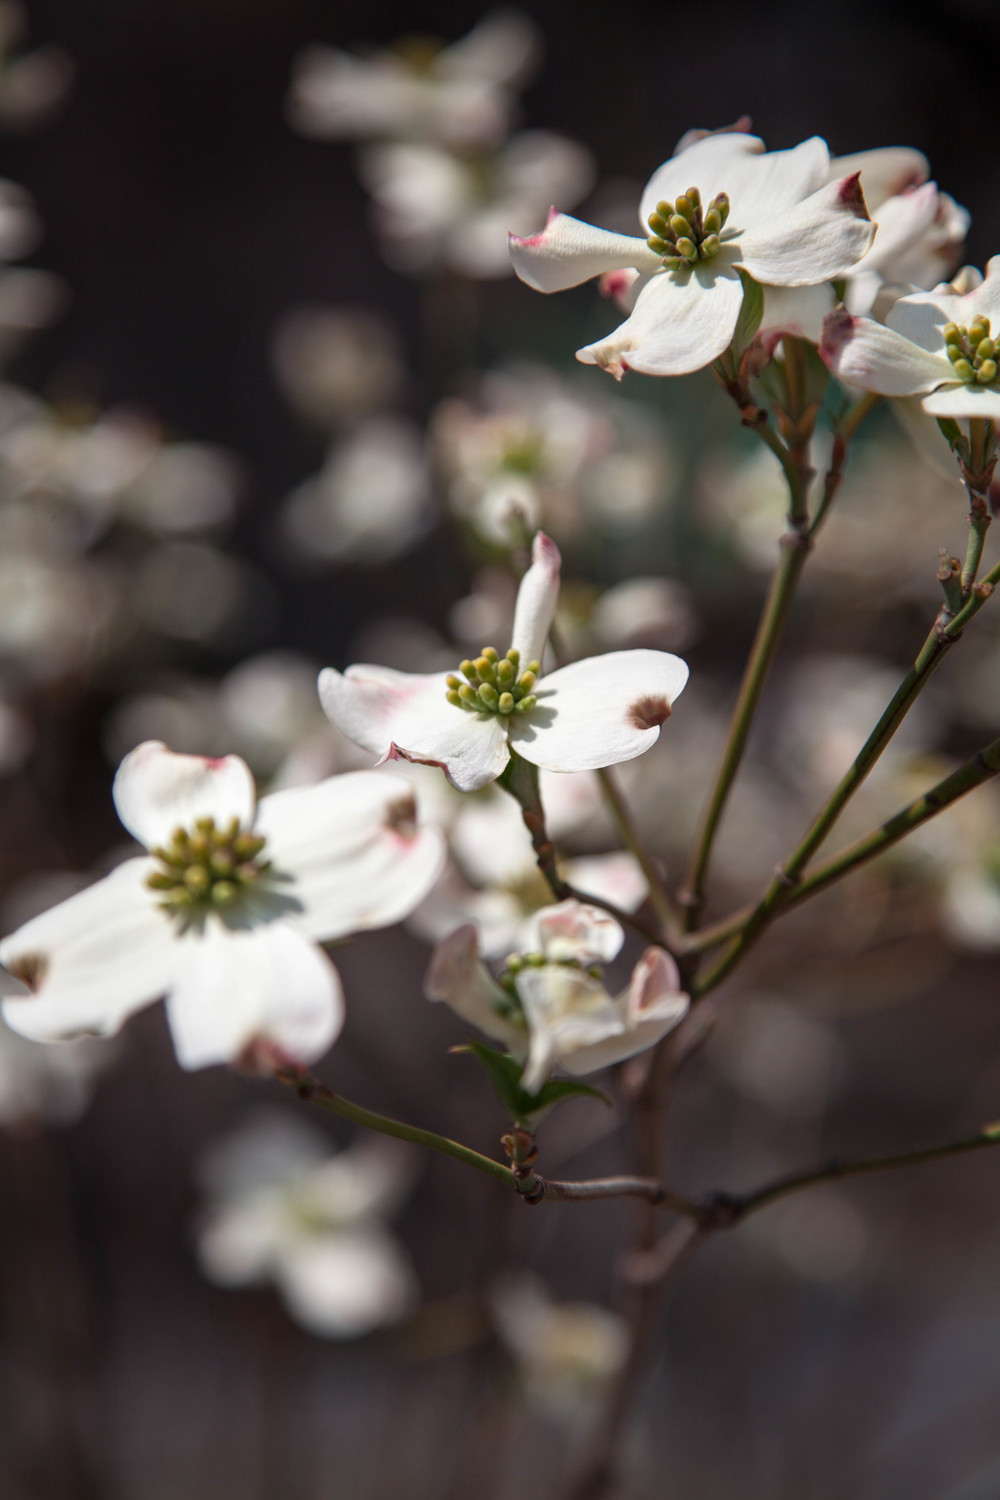 The Dogwood Blossom Planted in Honour of The Paris Agreement    inside the UN headquarters New York.